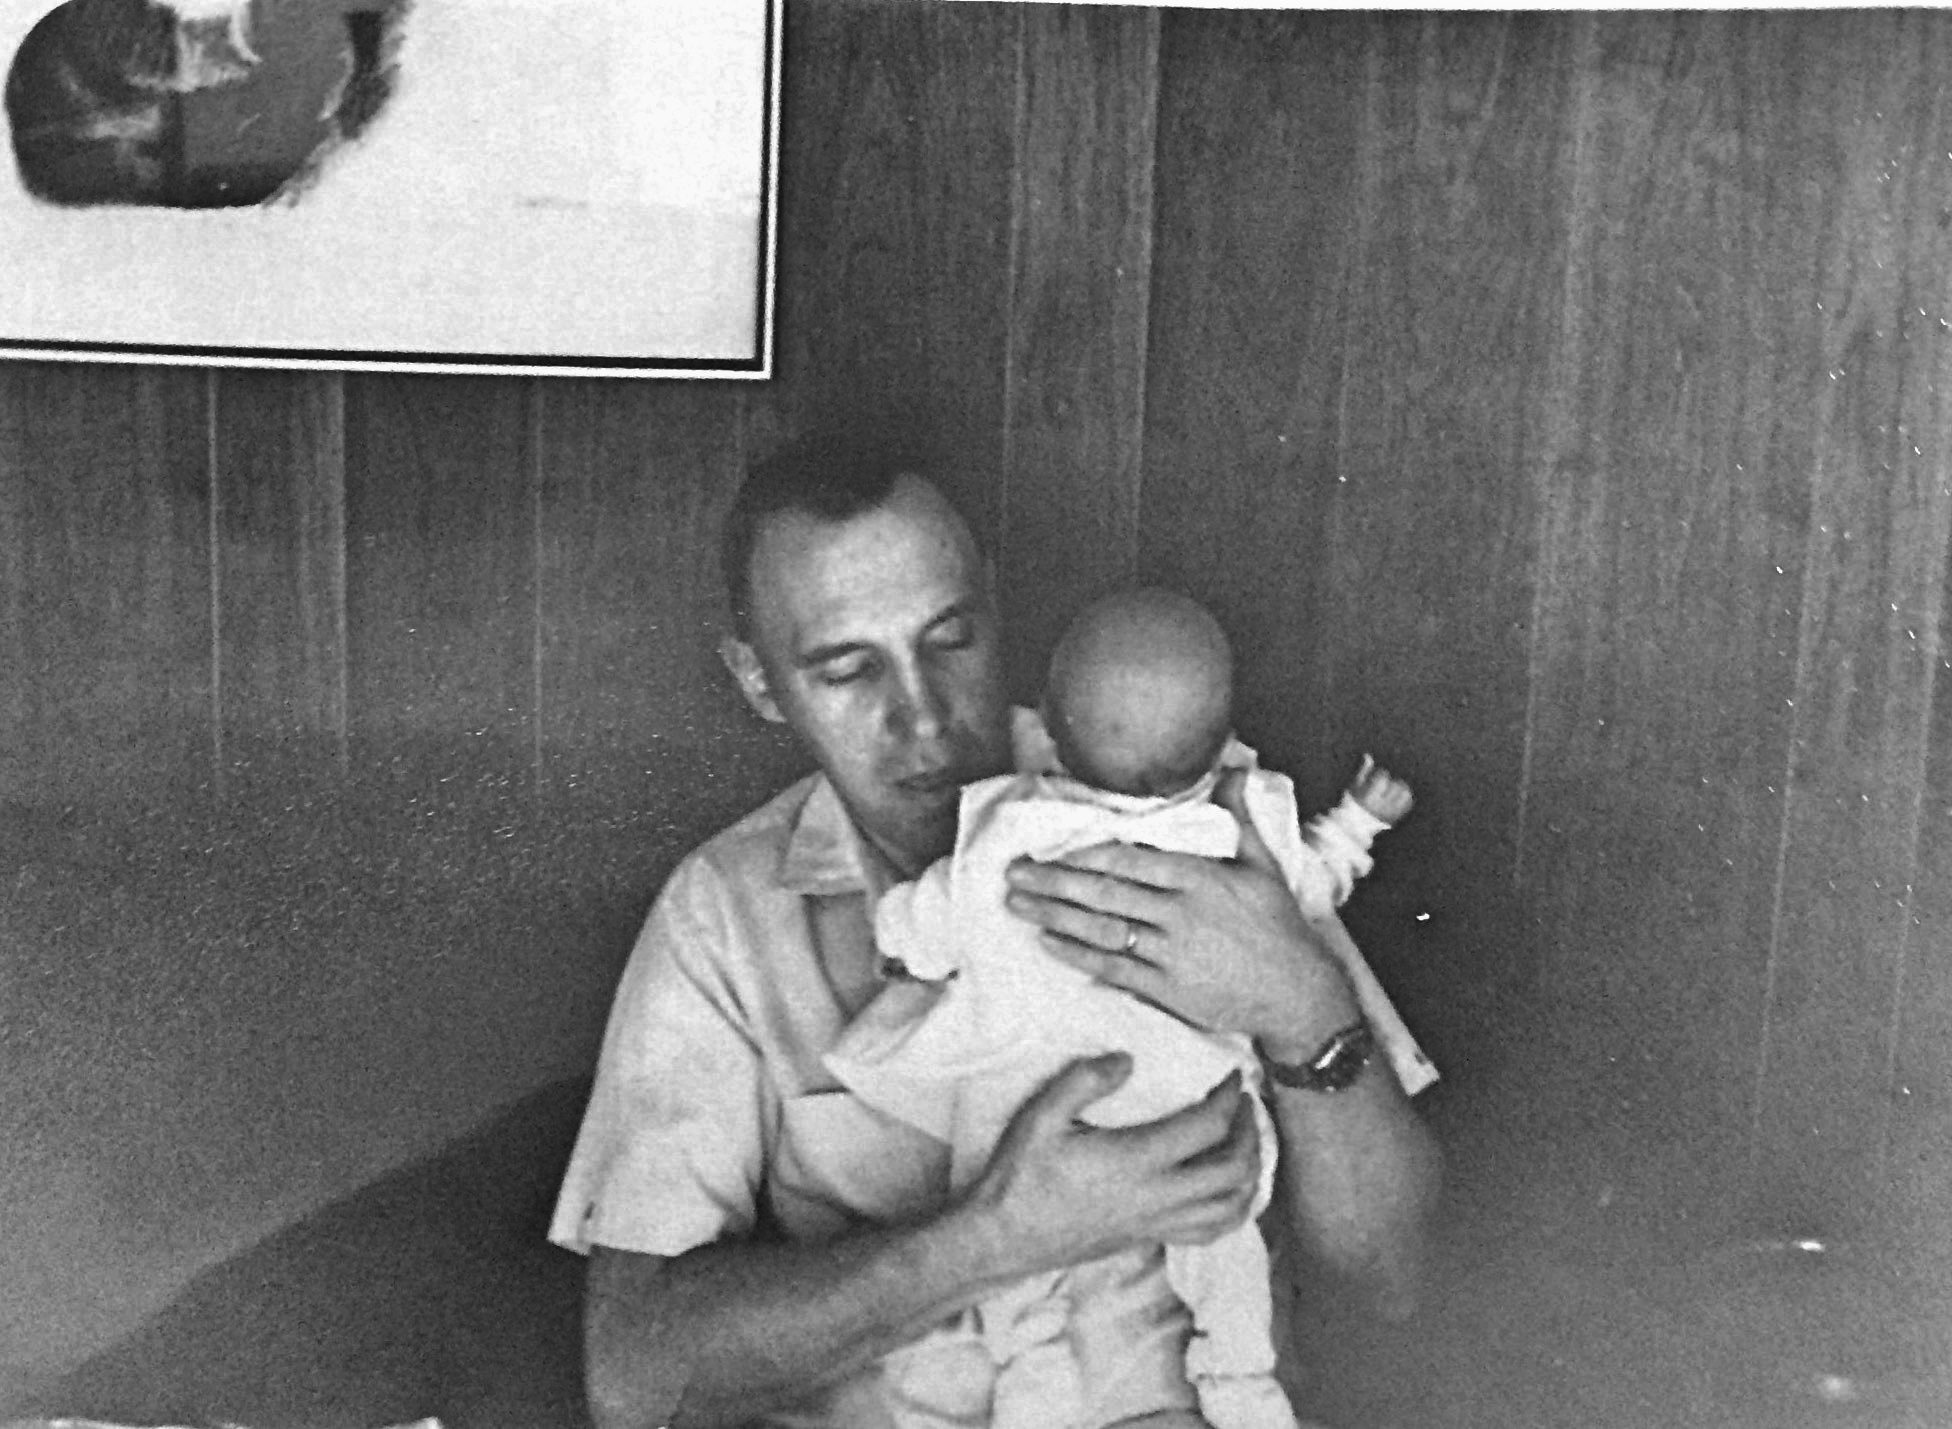 Meeting Dad for the first time at 30 days old. Concerned about the rising conflict in Viet Nam, they decided Mom would return to Canada to deliver.